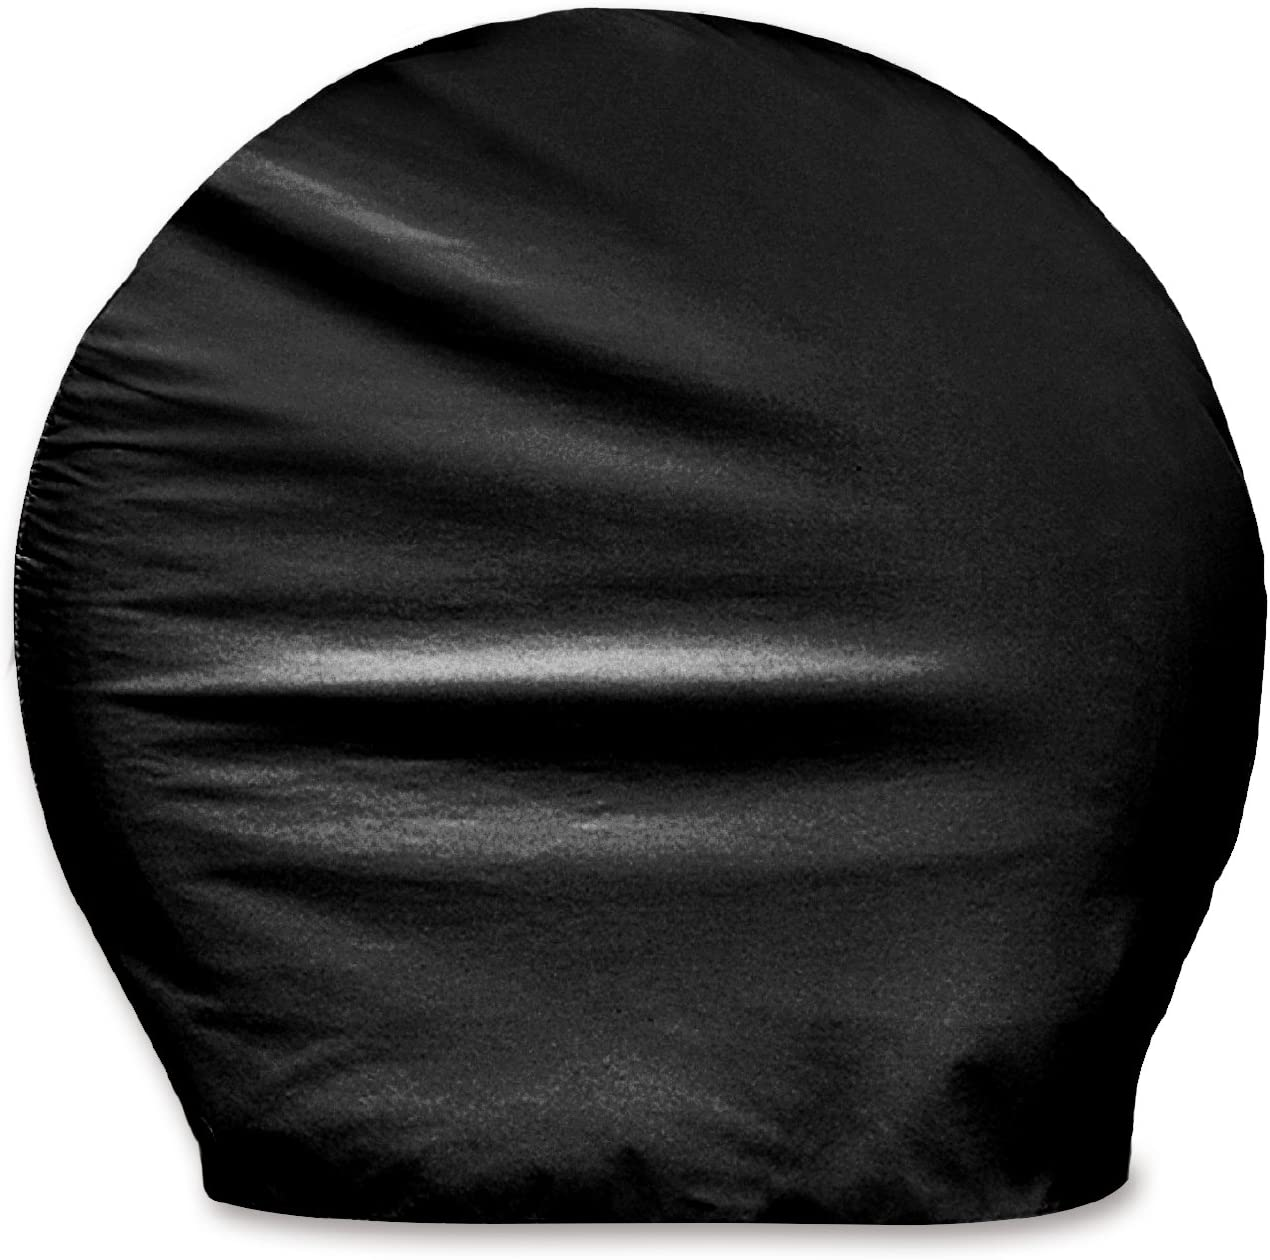 "ADCO 3977 Black BUS Vinyl Ultra Tyre Gard Wheel Cover, (Set of 2) (Fits Tire Diameter 40""-42"")"